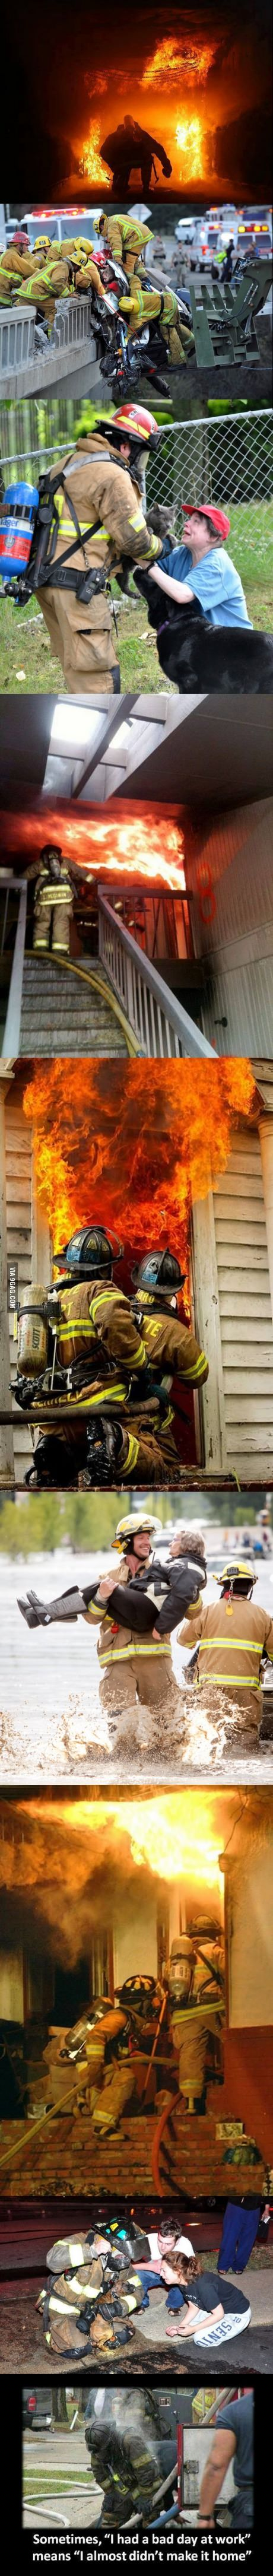 Respect to all the firemen! www.pyrotherm.gr FIRE PROTECTION ΠΥΡΟΣΒΕΣΤΙΚΑ 36 ΧΡΟΝΙΑ ΠΥΡΟΣΒΕΣΤΙΚΑ 36 YEARS IN FIRE PROTECTION FIRE - SECURITY ENGINEERS & CONTRACTORS REFILLING - SERVICE - SALE OF FIRE EXTINGUISHERS www.pyrotherm.gr www.pyrosvestika.com www.fireextinguis... www.pyrosvestires.eu www.pyrosvestires.